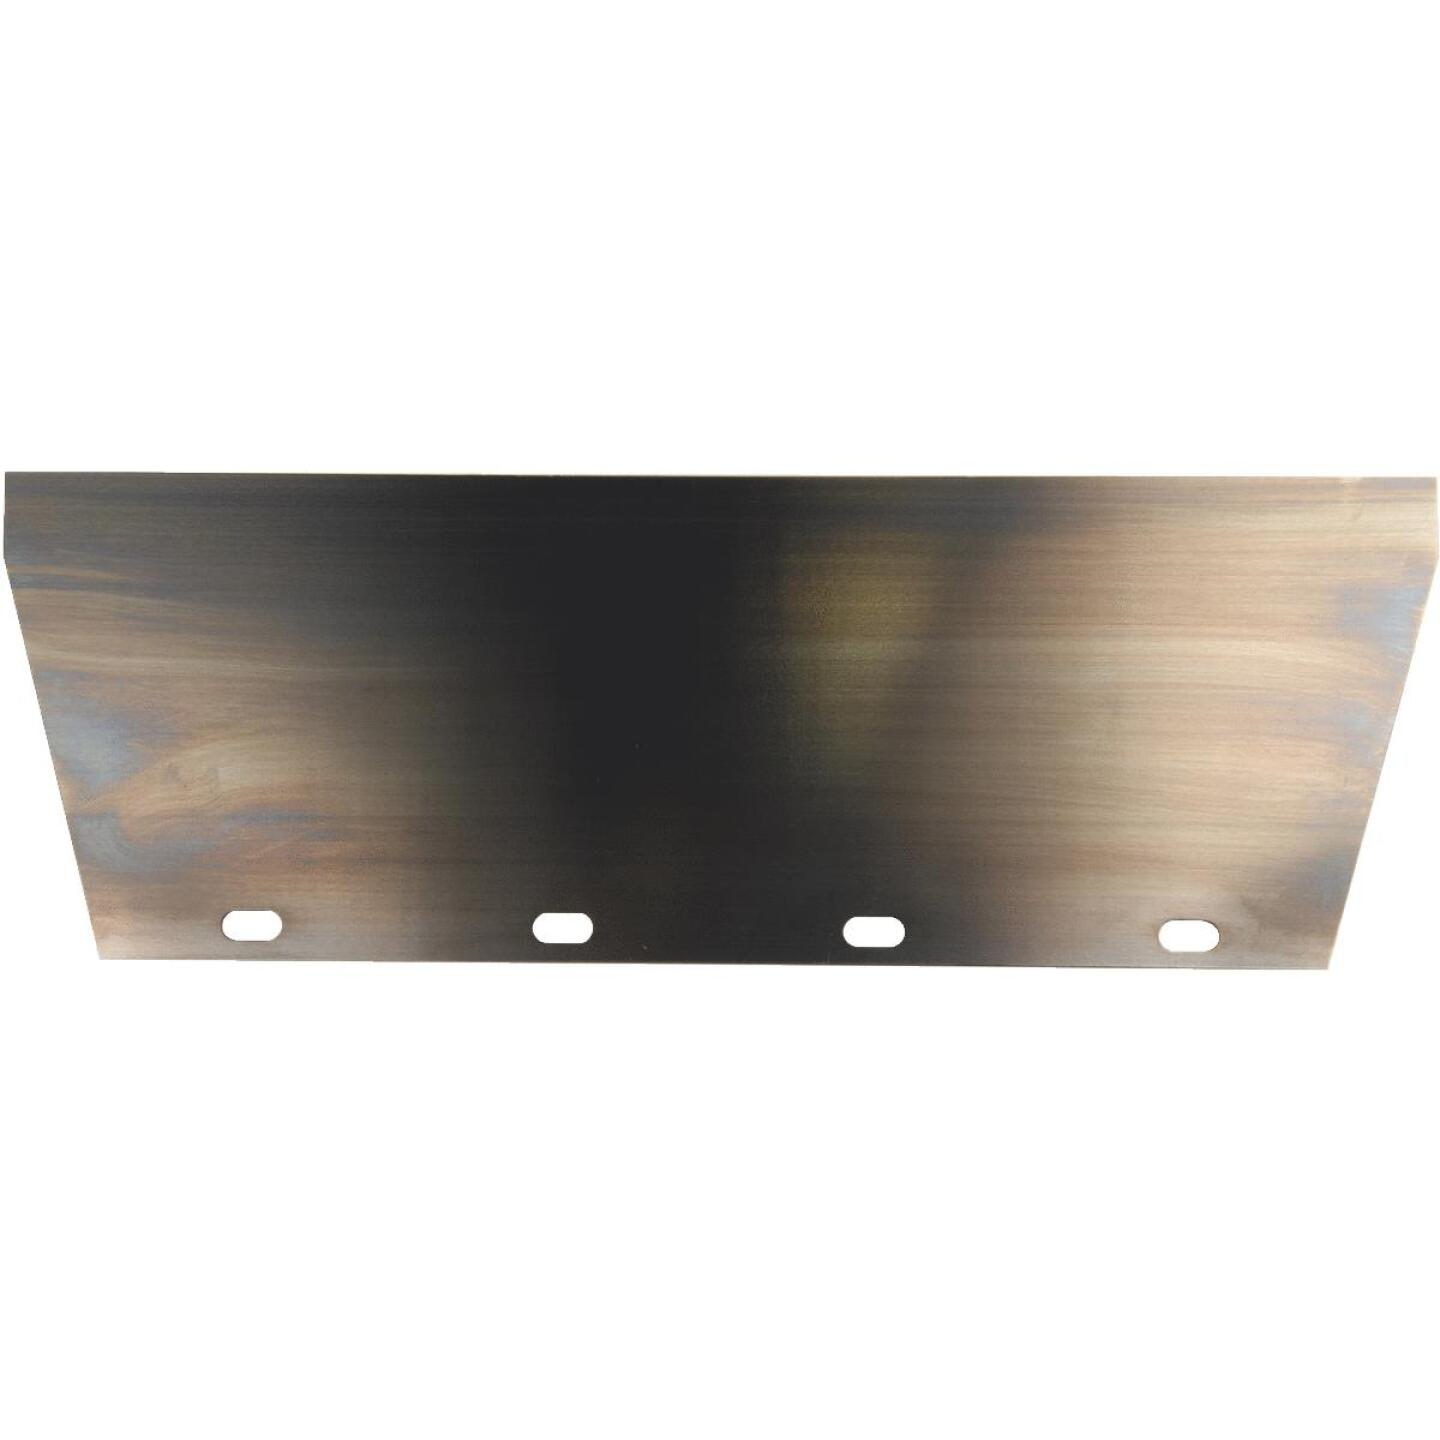 QEP 14 In. Replacement Floor Scraper Blade Image 1